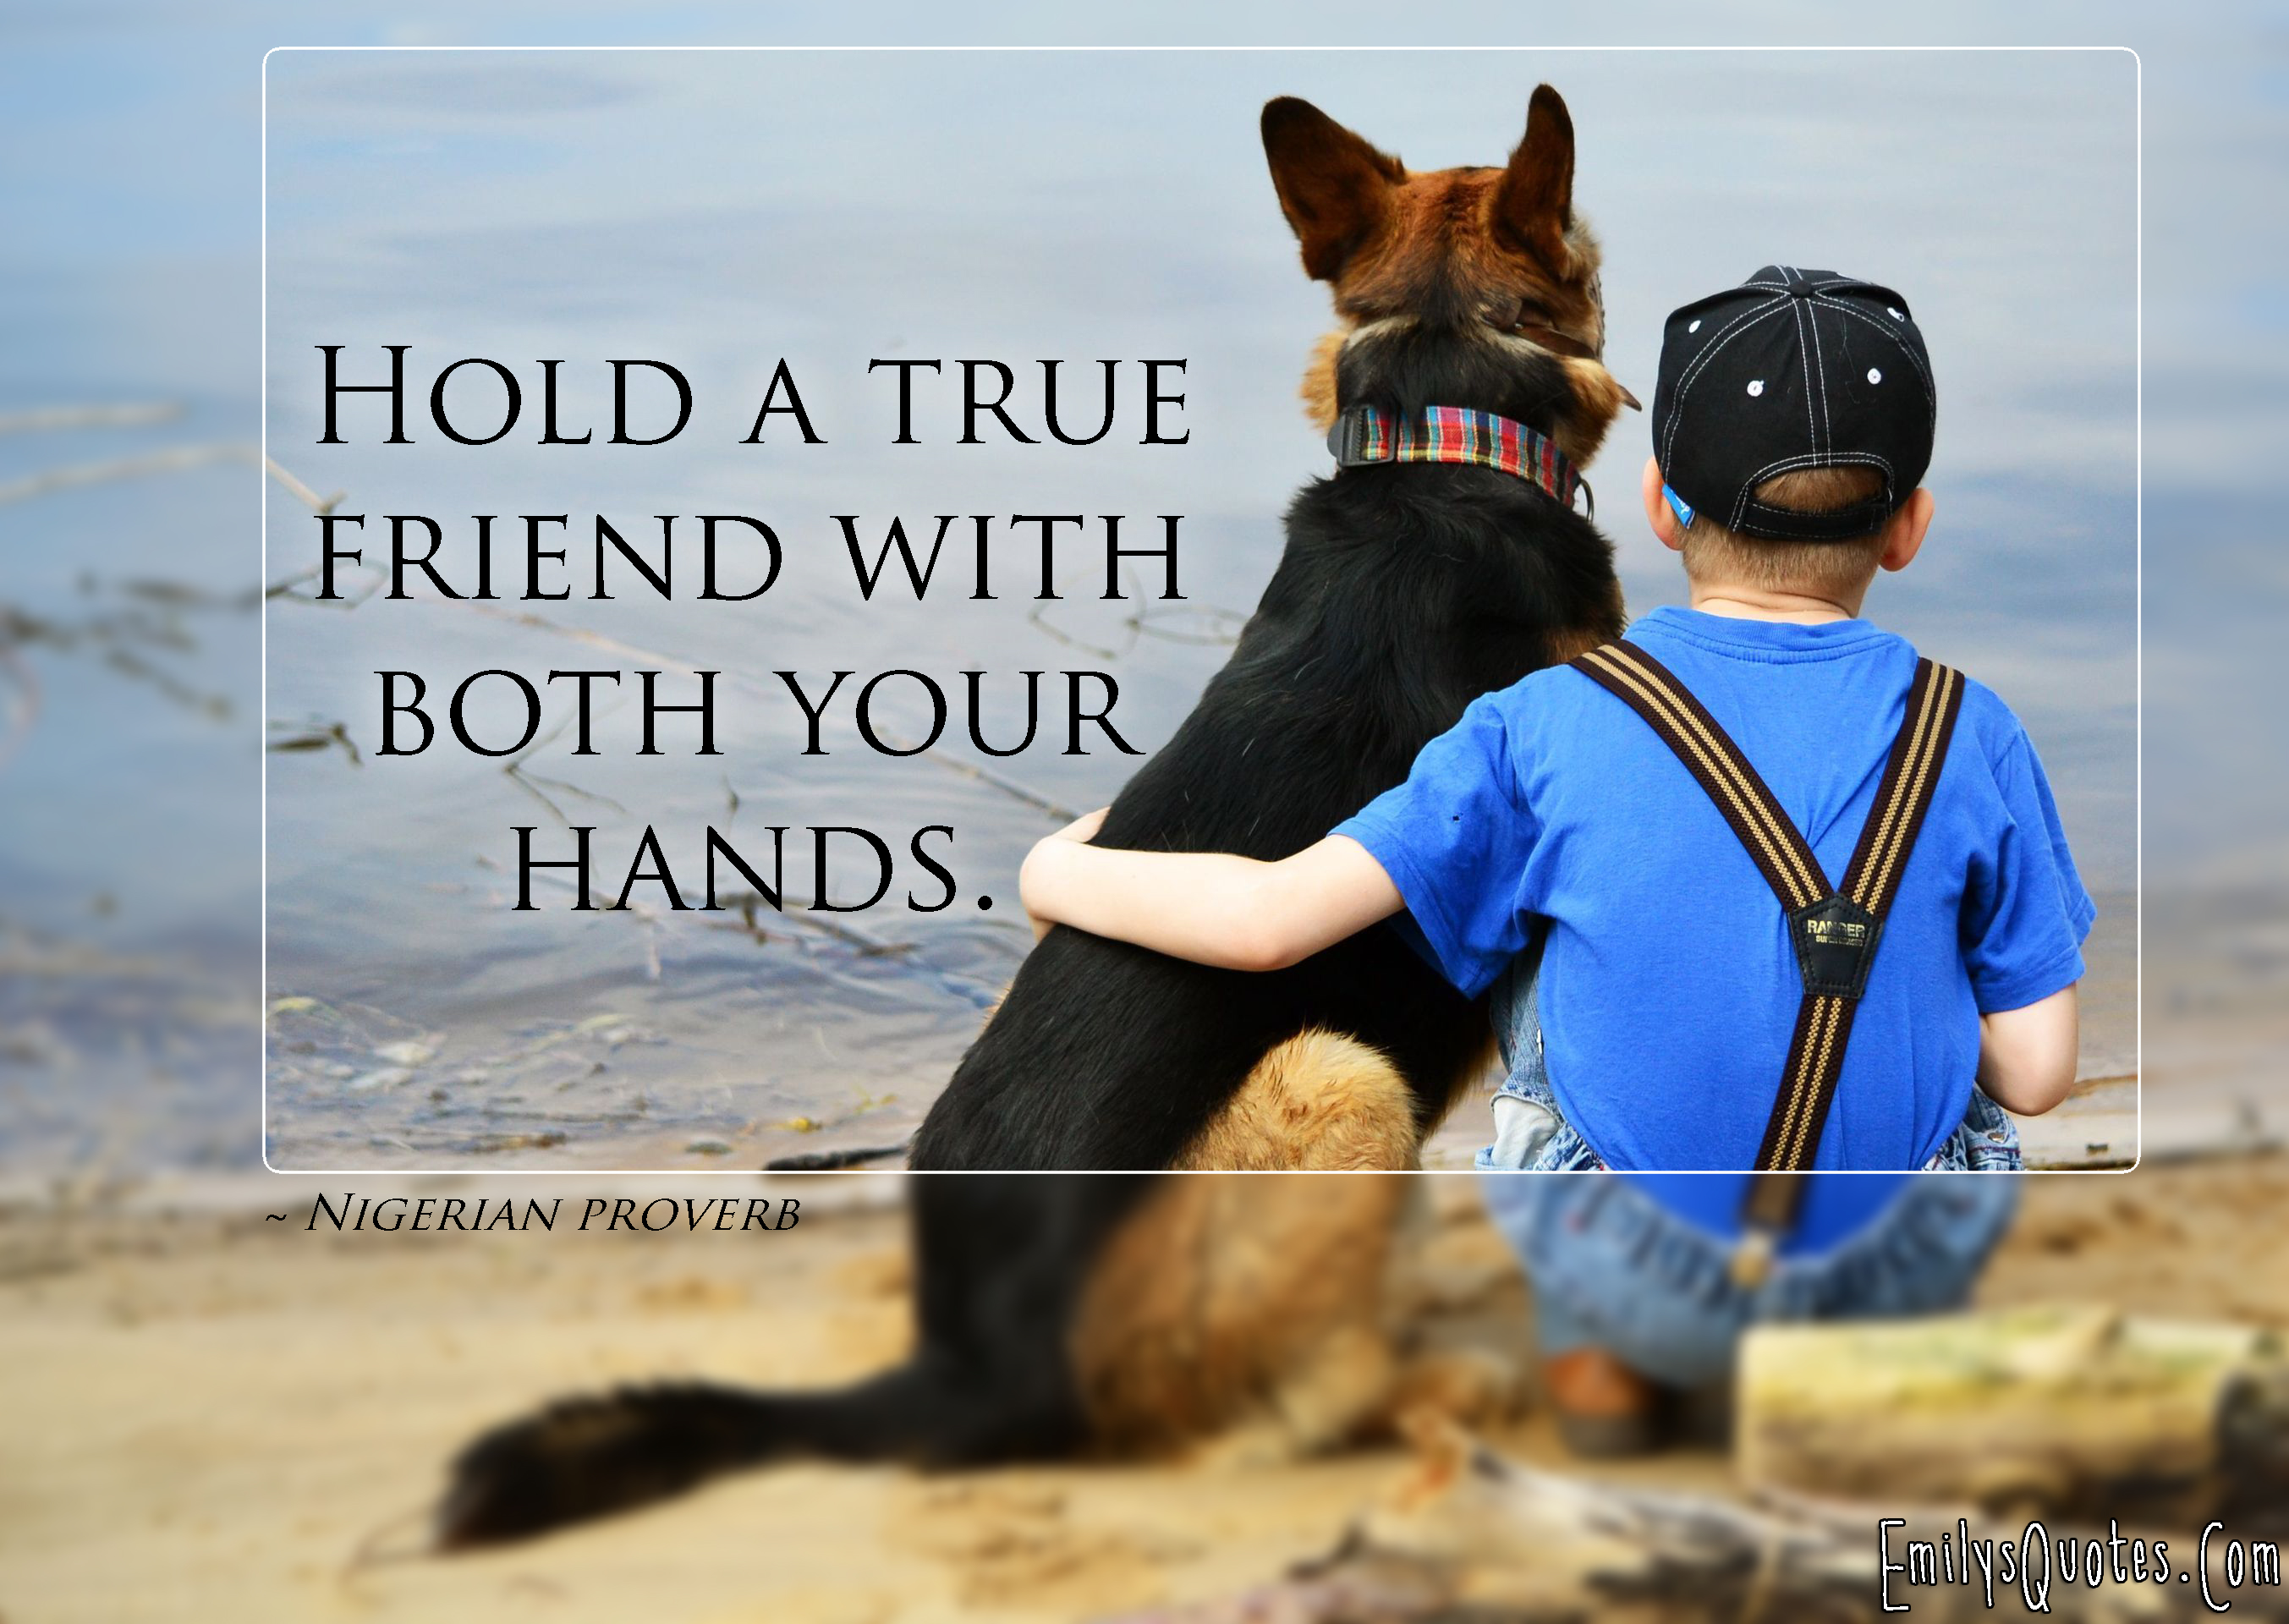 Inspirational Quotes About Friendships Hold A True Friend With Both Your Hands  Popular Inspirational